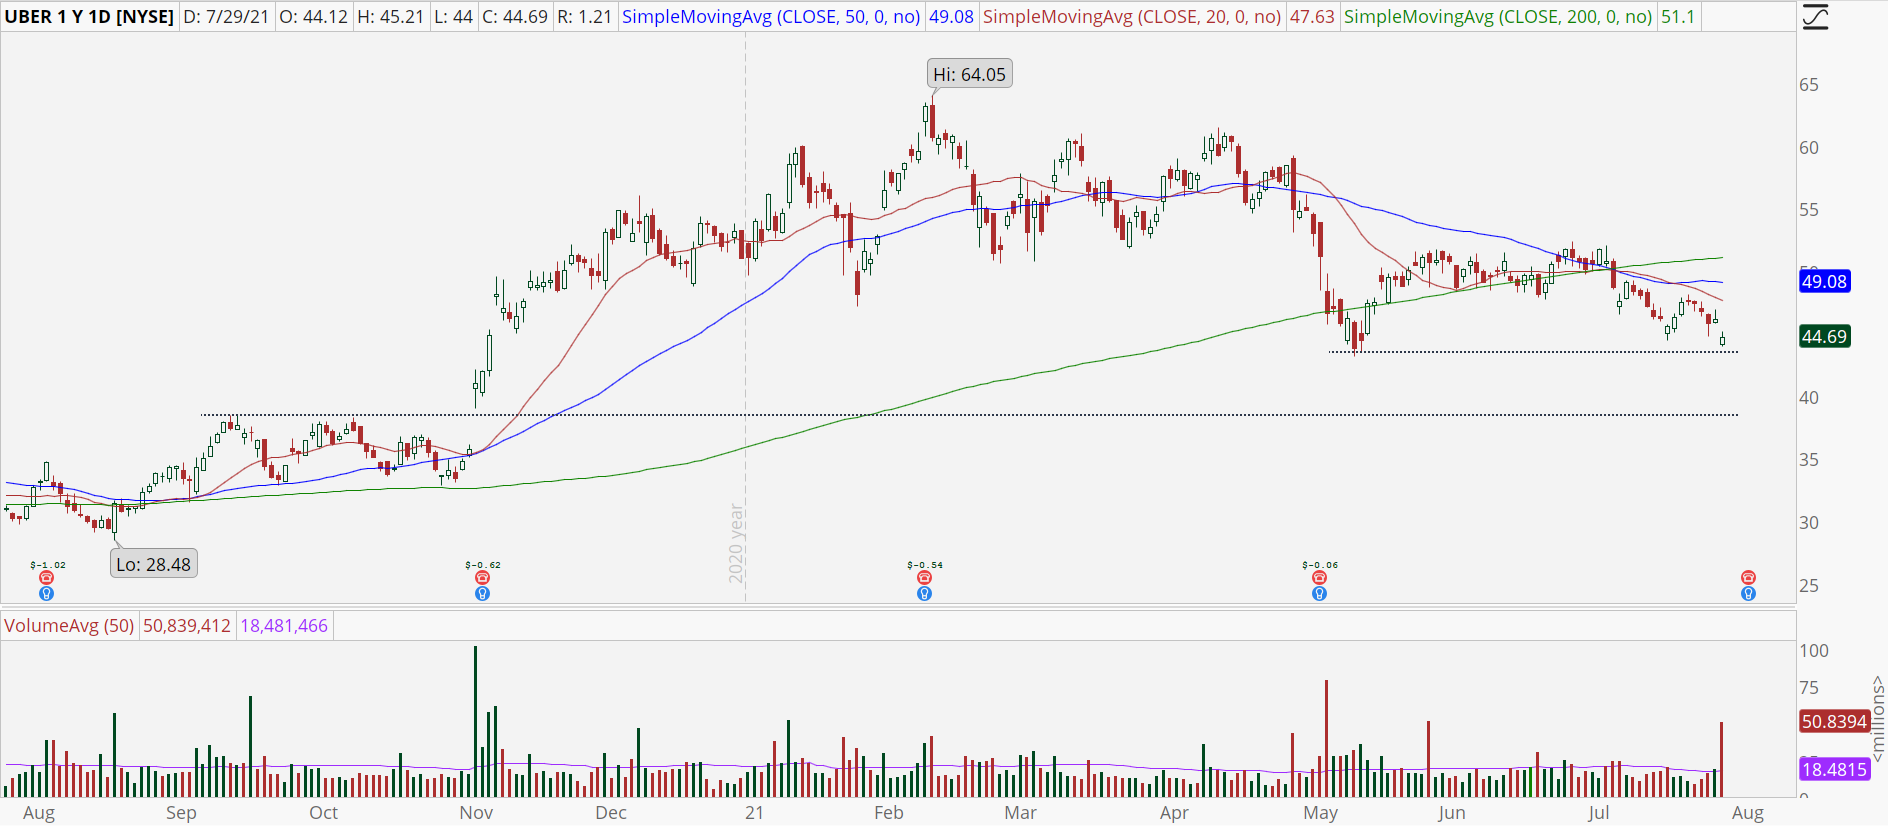 Uber (UBER) daily stock chart with downtrend